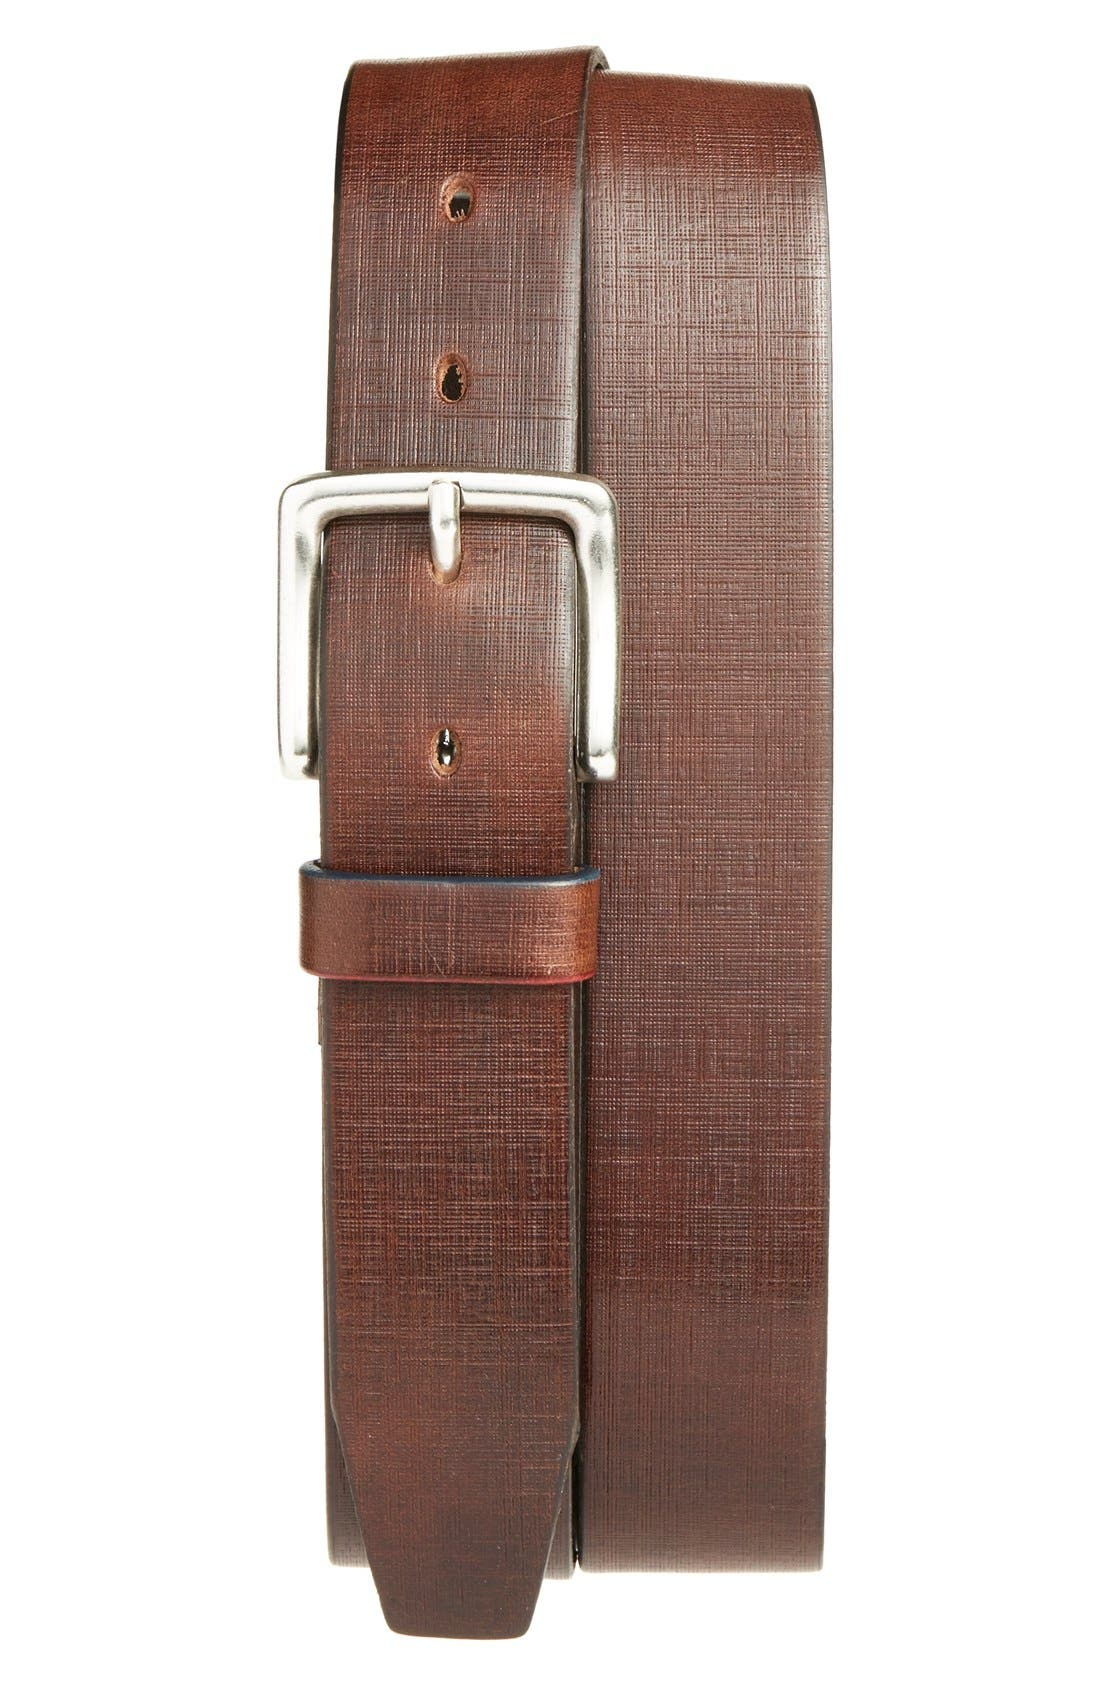 Trafalgar Leather Belt